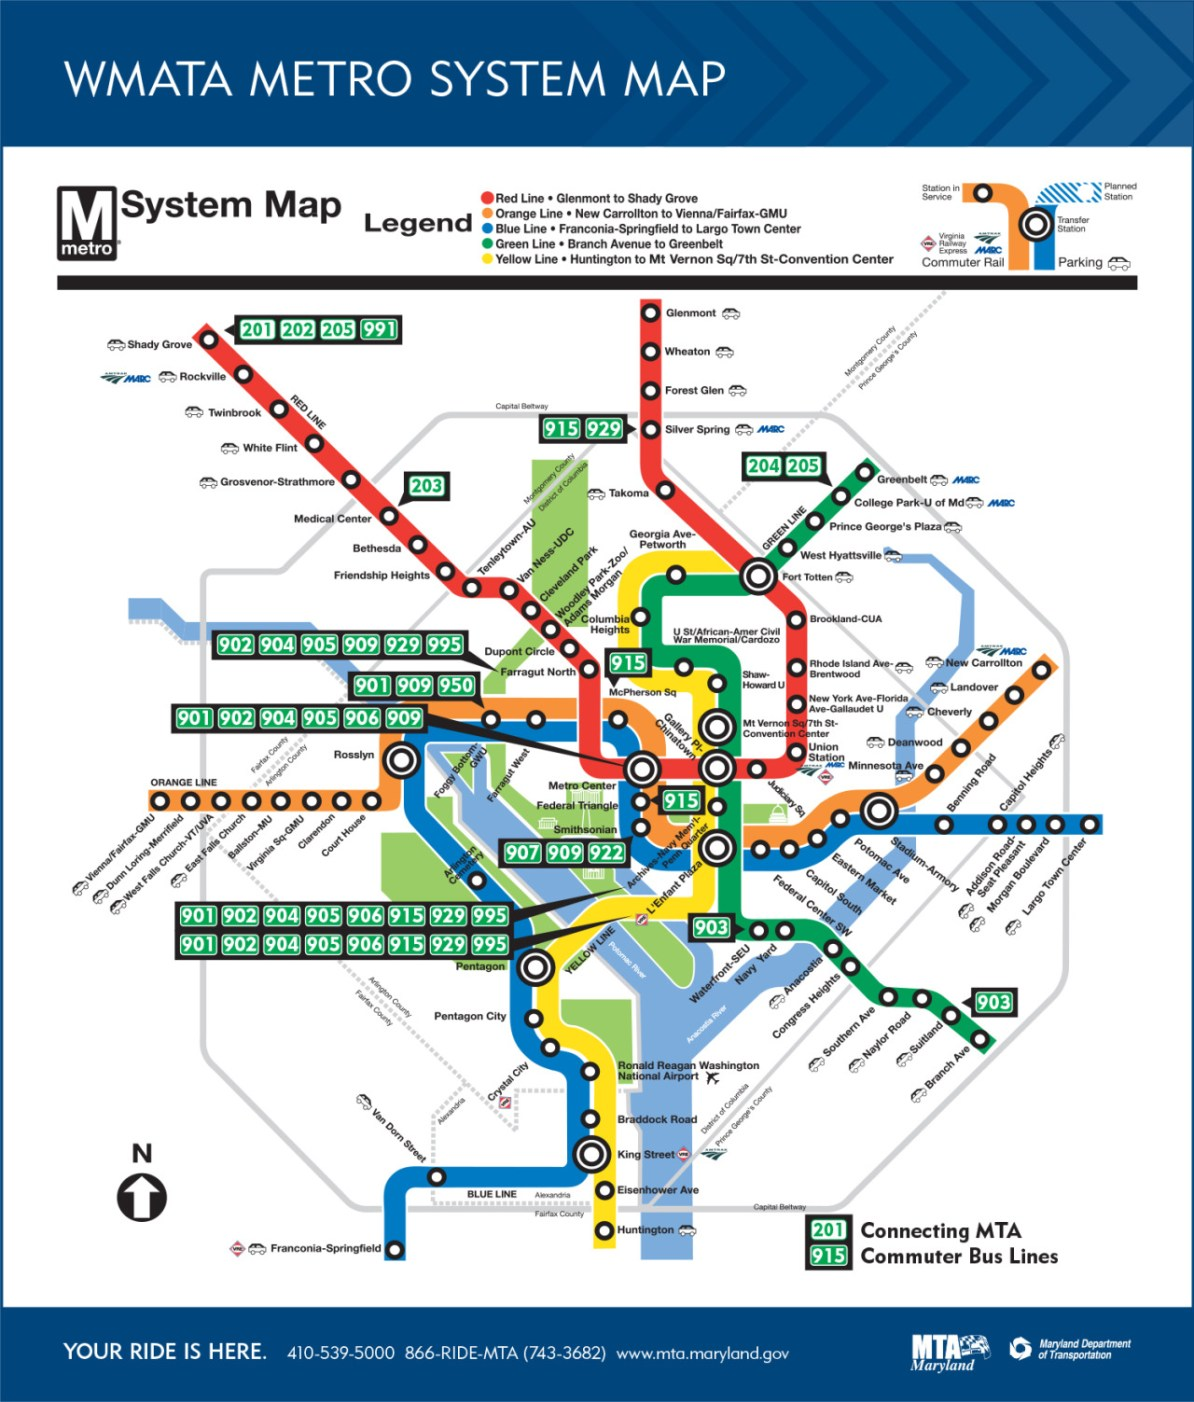 Transit Maps: Weird: The Maryland Transit Administration's